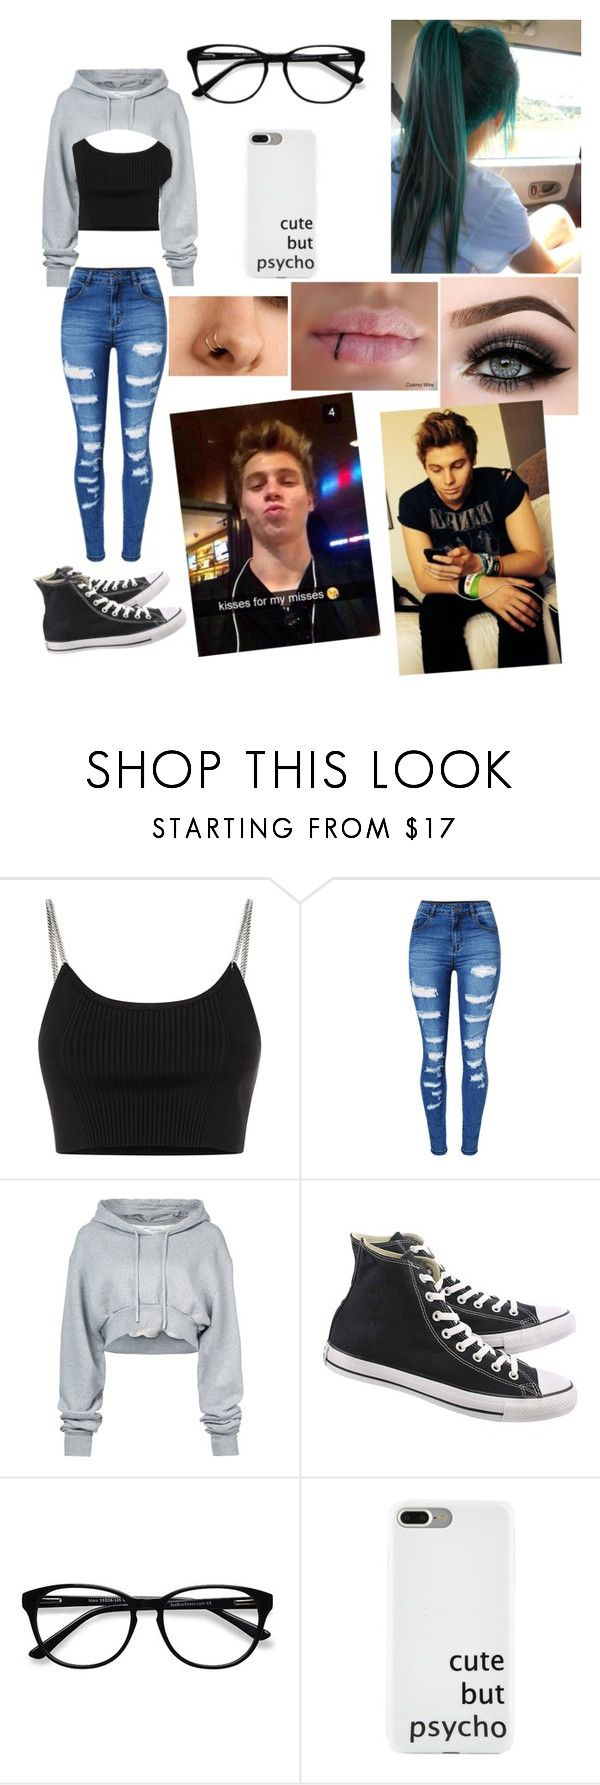 """finding out lukes flight got canceled and he jeeps texting u"" by kayskygre ❤ liked on Polyvore featuring Alexander Wang, WithChic, Off-White, Converse, EyeBuyDirect.com and ASAP"